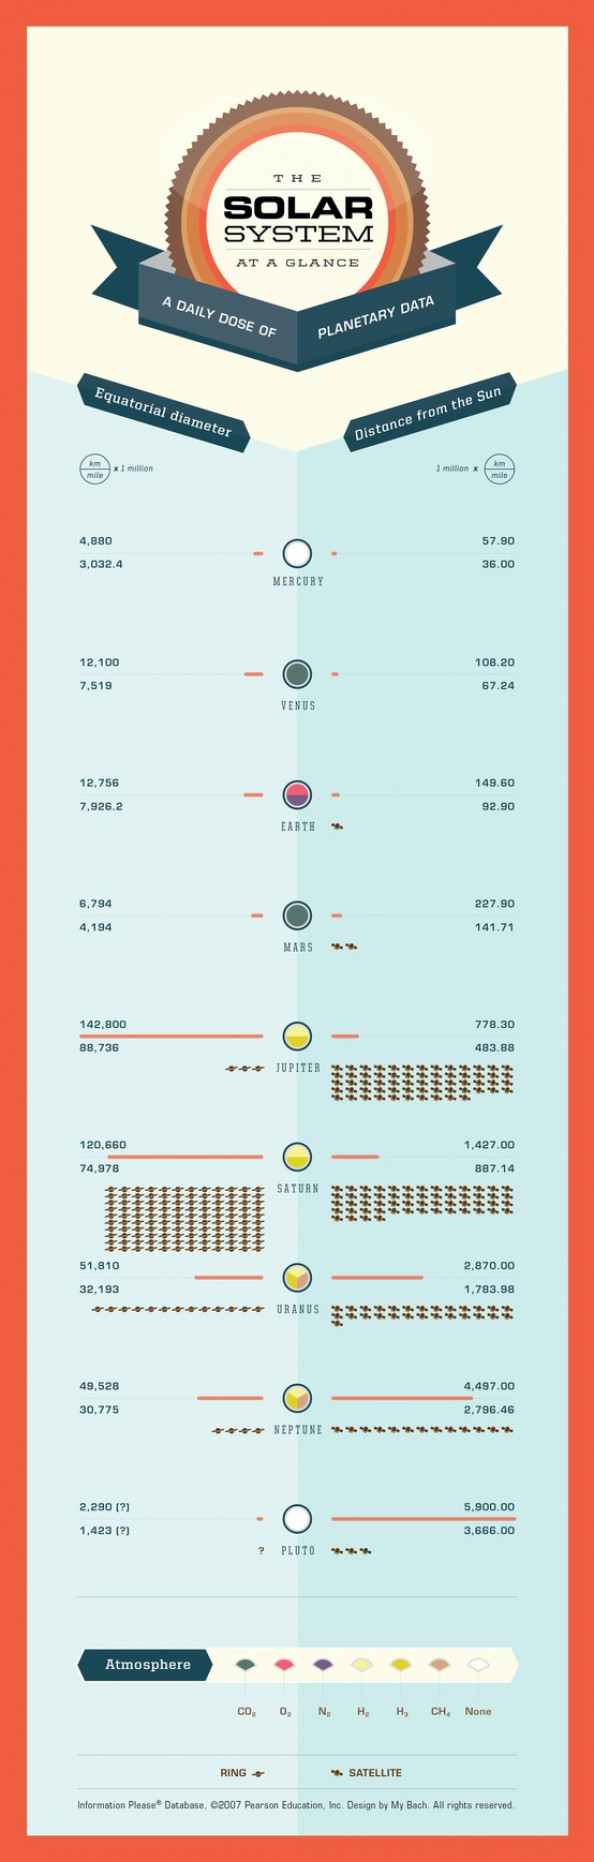 The Solar System at a glance Infographic